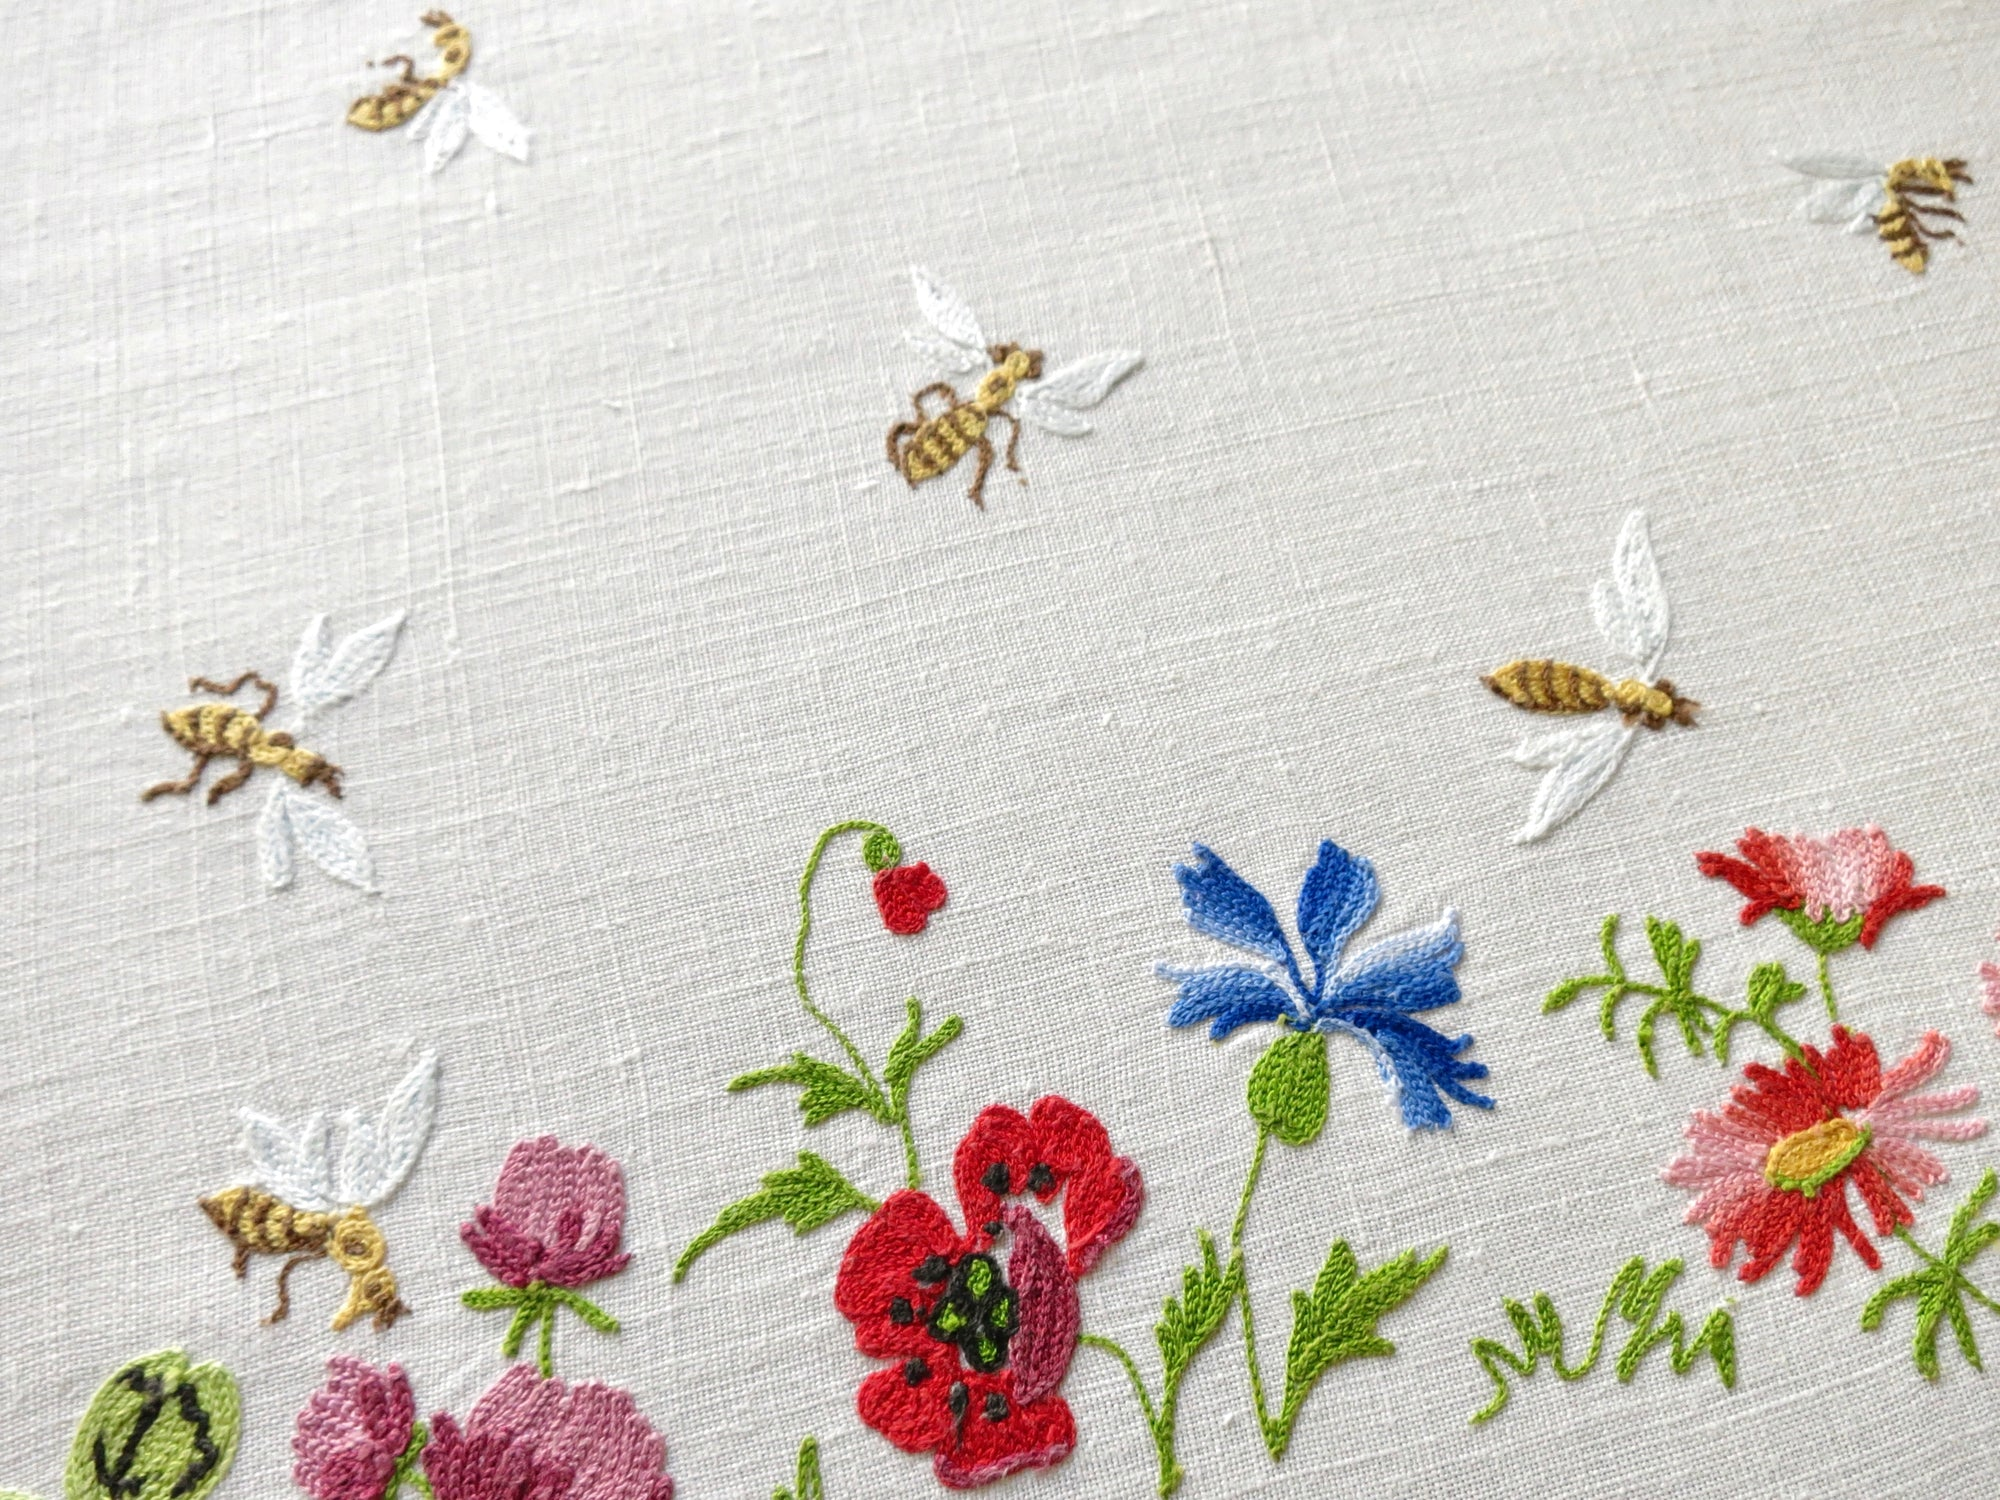 Bees, Beehives & Flowers French Embroidered Tablecloth 66x114, w/18 Napkins